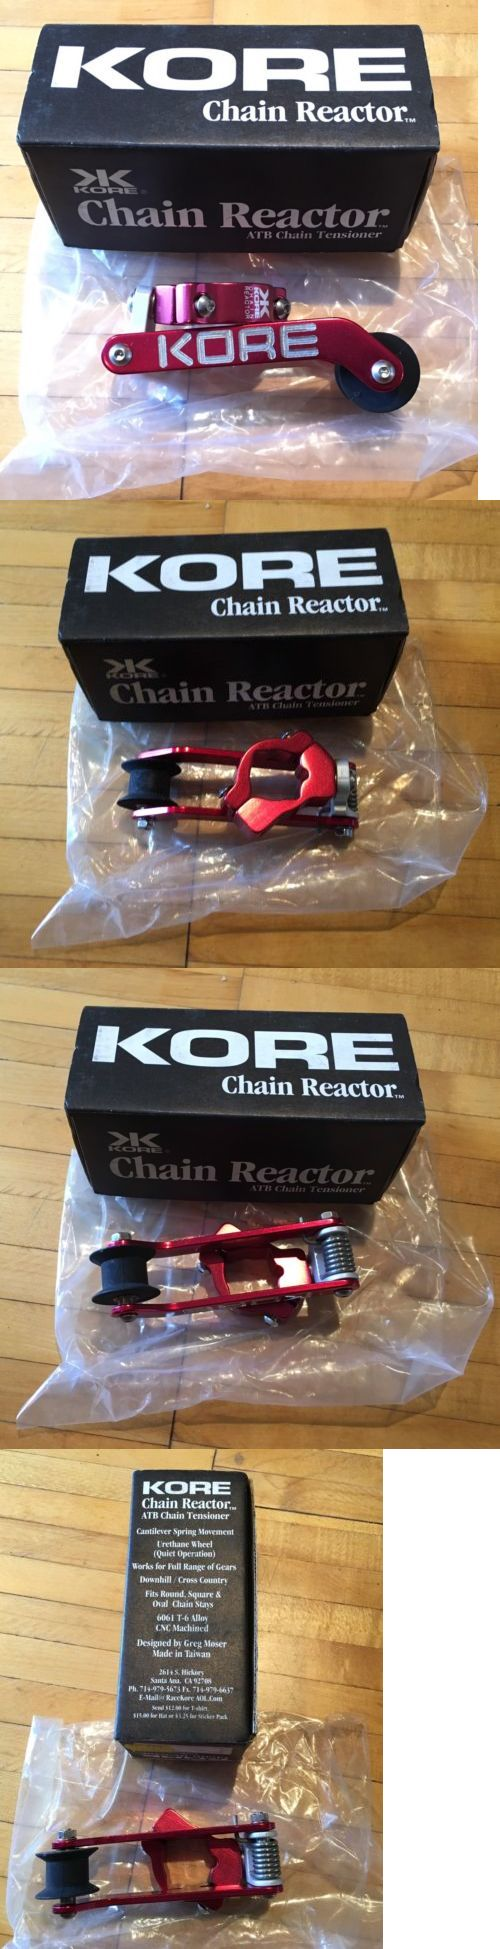 Other Bike Components and Parts 57267: Nos Kore Chain Reactor Tensioner Mtb Single Speed Red Anodized Ringle Kooka -> BUY IT NOW ONLY: $72.99 on eBay!